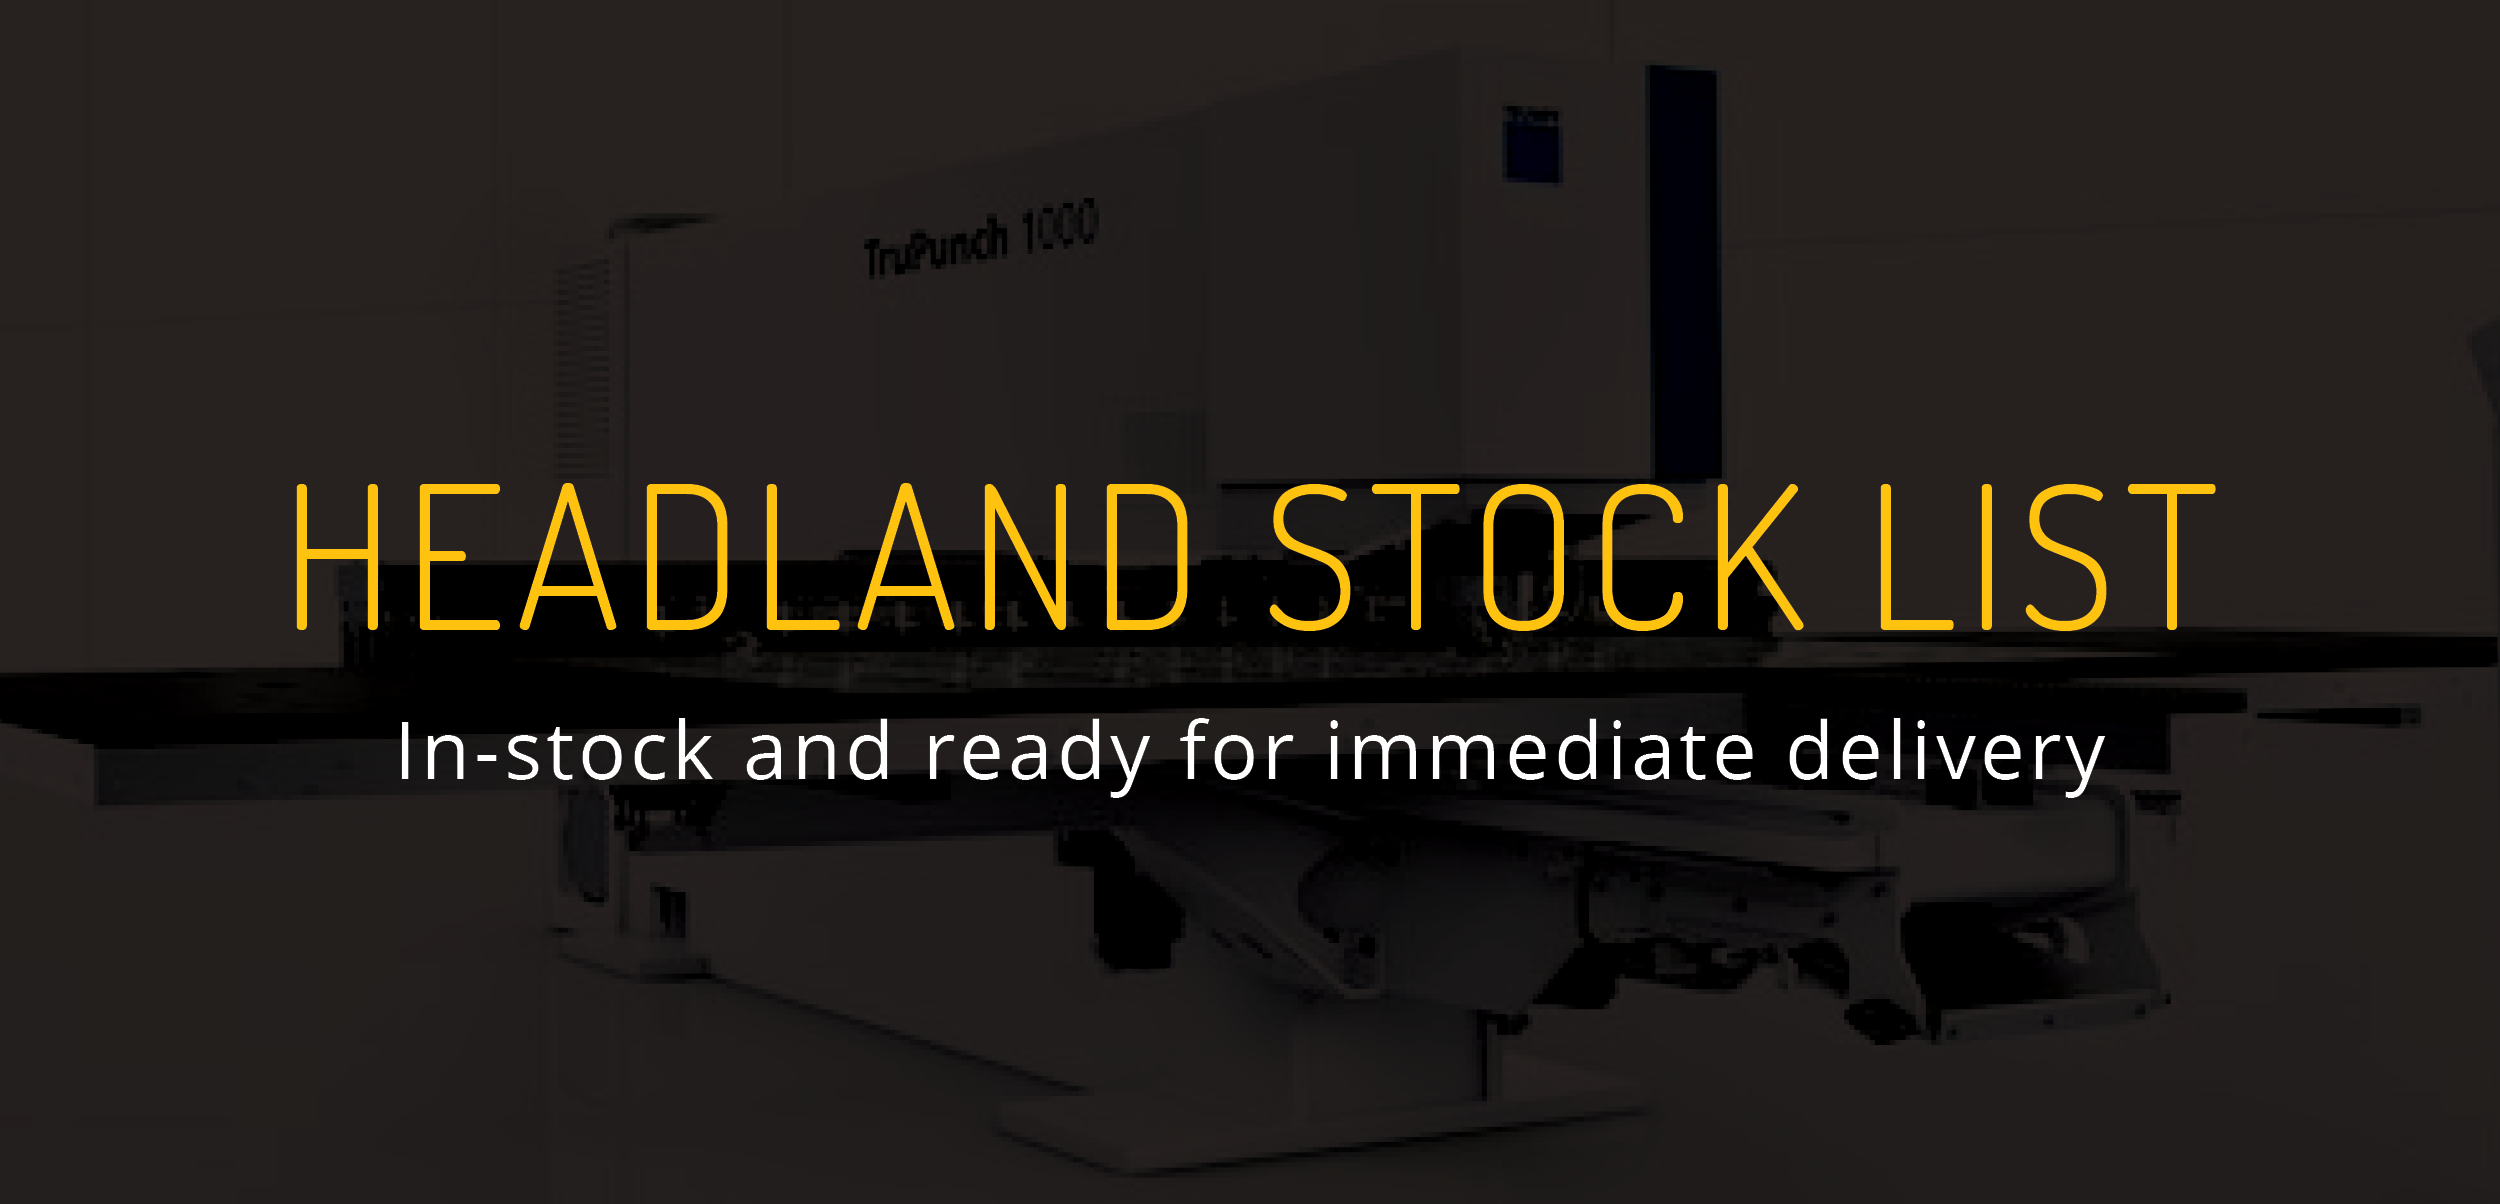 Headland Stock List Machines